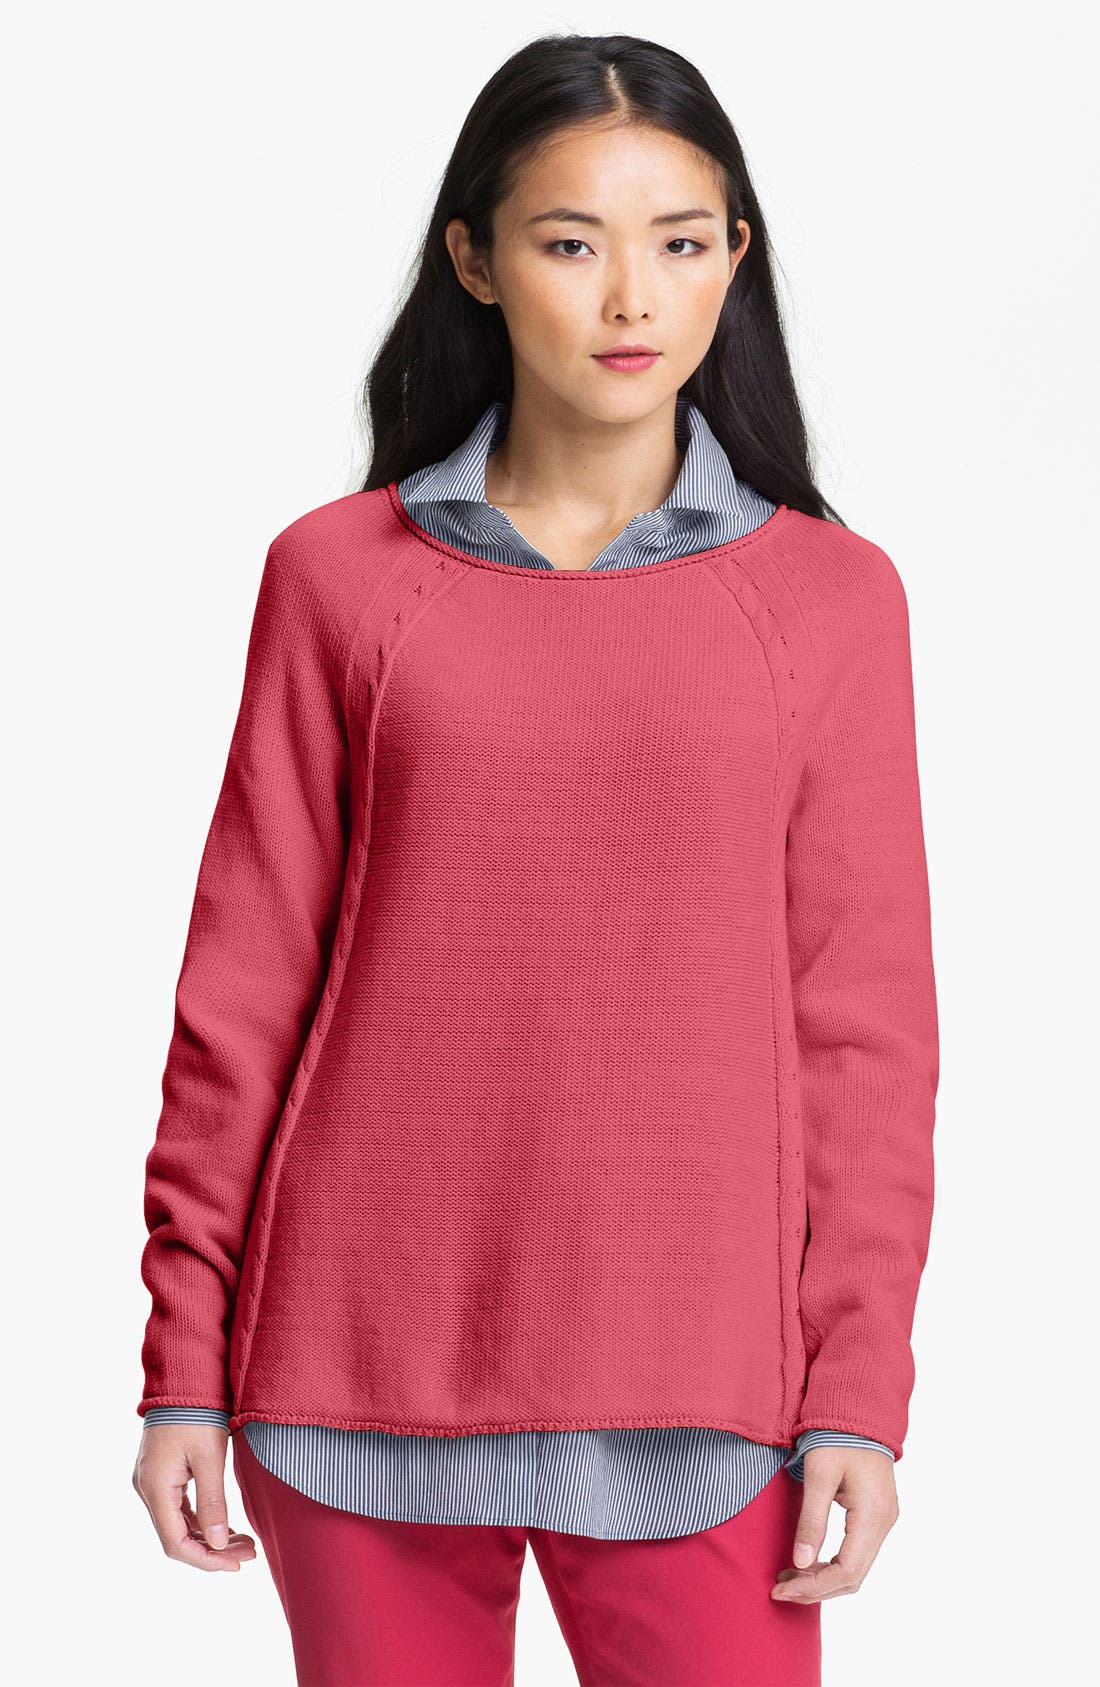 Alternate Image 1 Selected - Lafayette 148 New York 'Essential' Scoop Neck Sweater